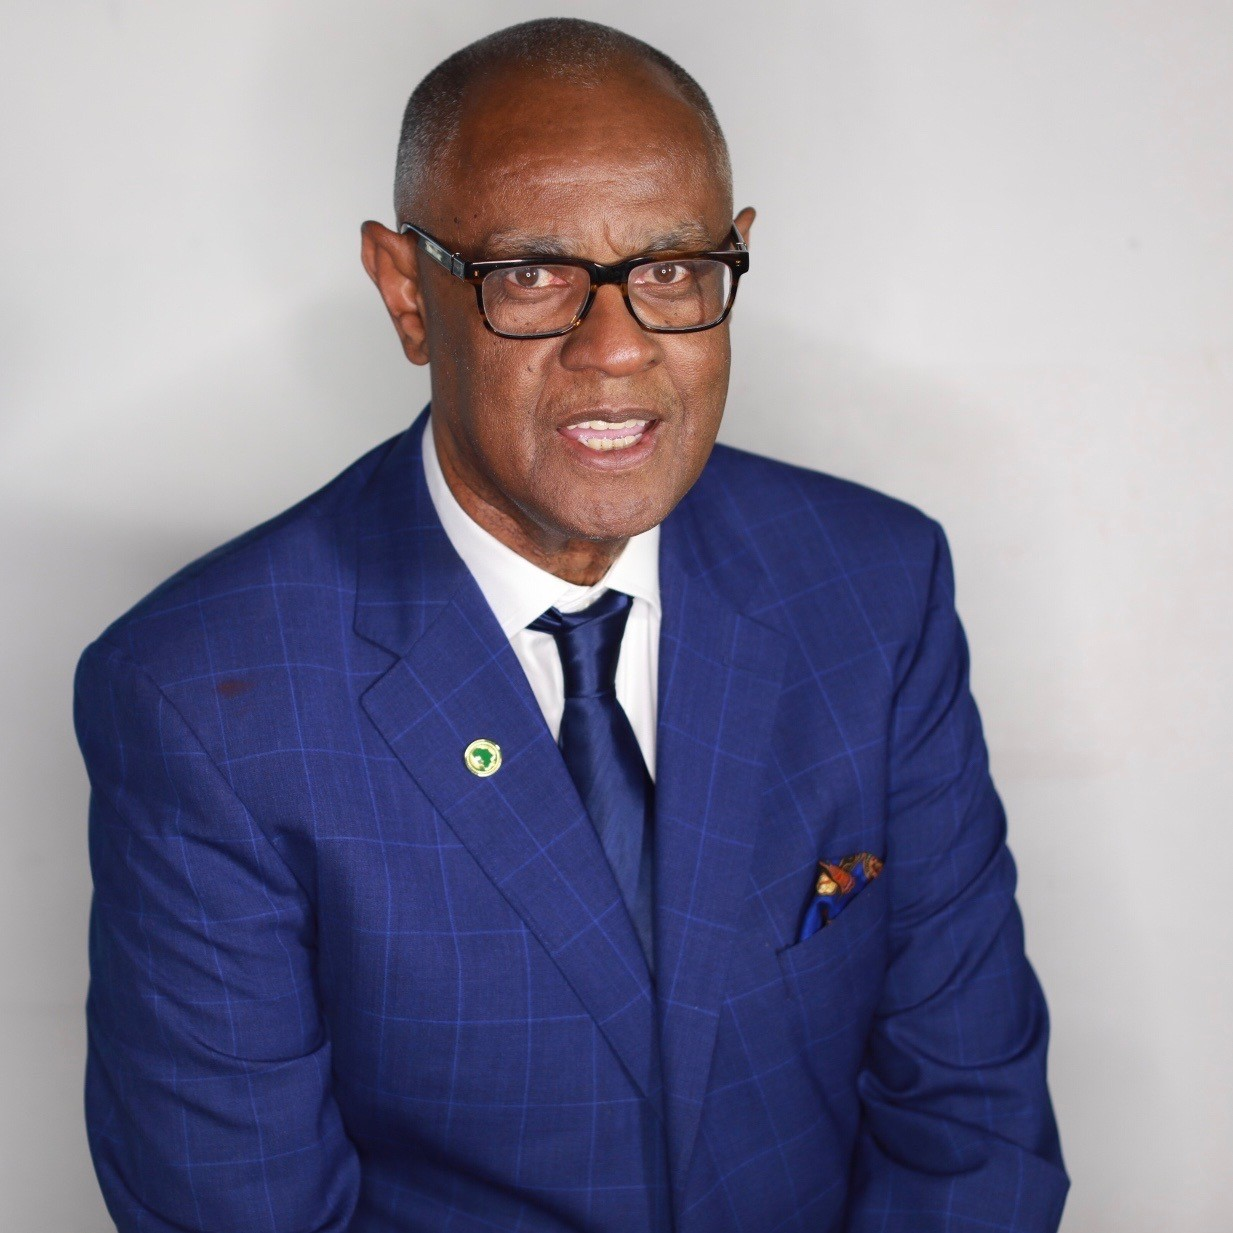 Melvin Foote is CEO & President of the Constituency for Africa